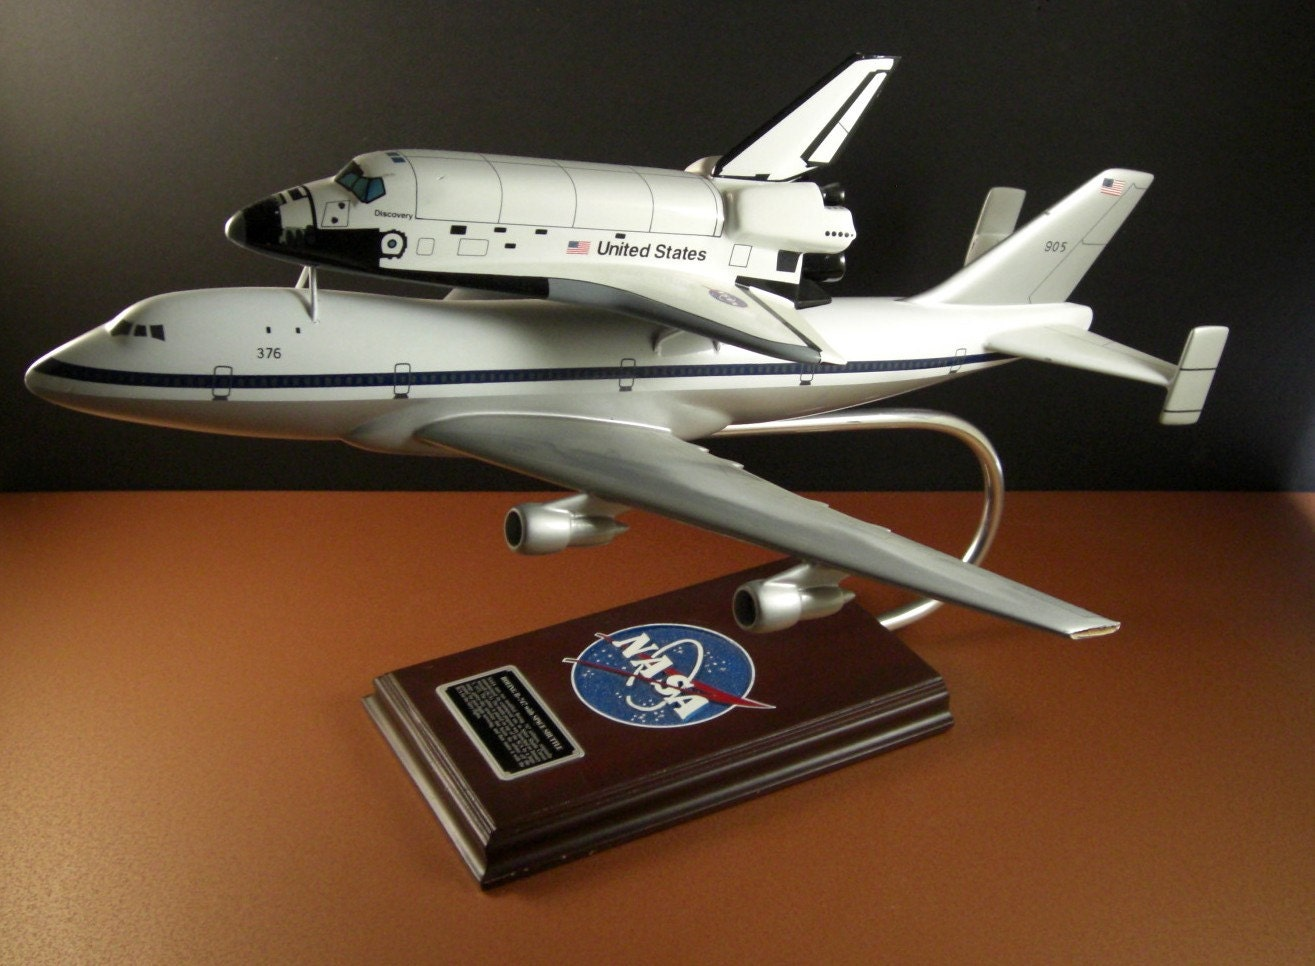 discovery space shuttle model - photo #29